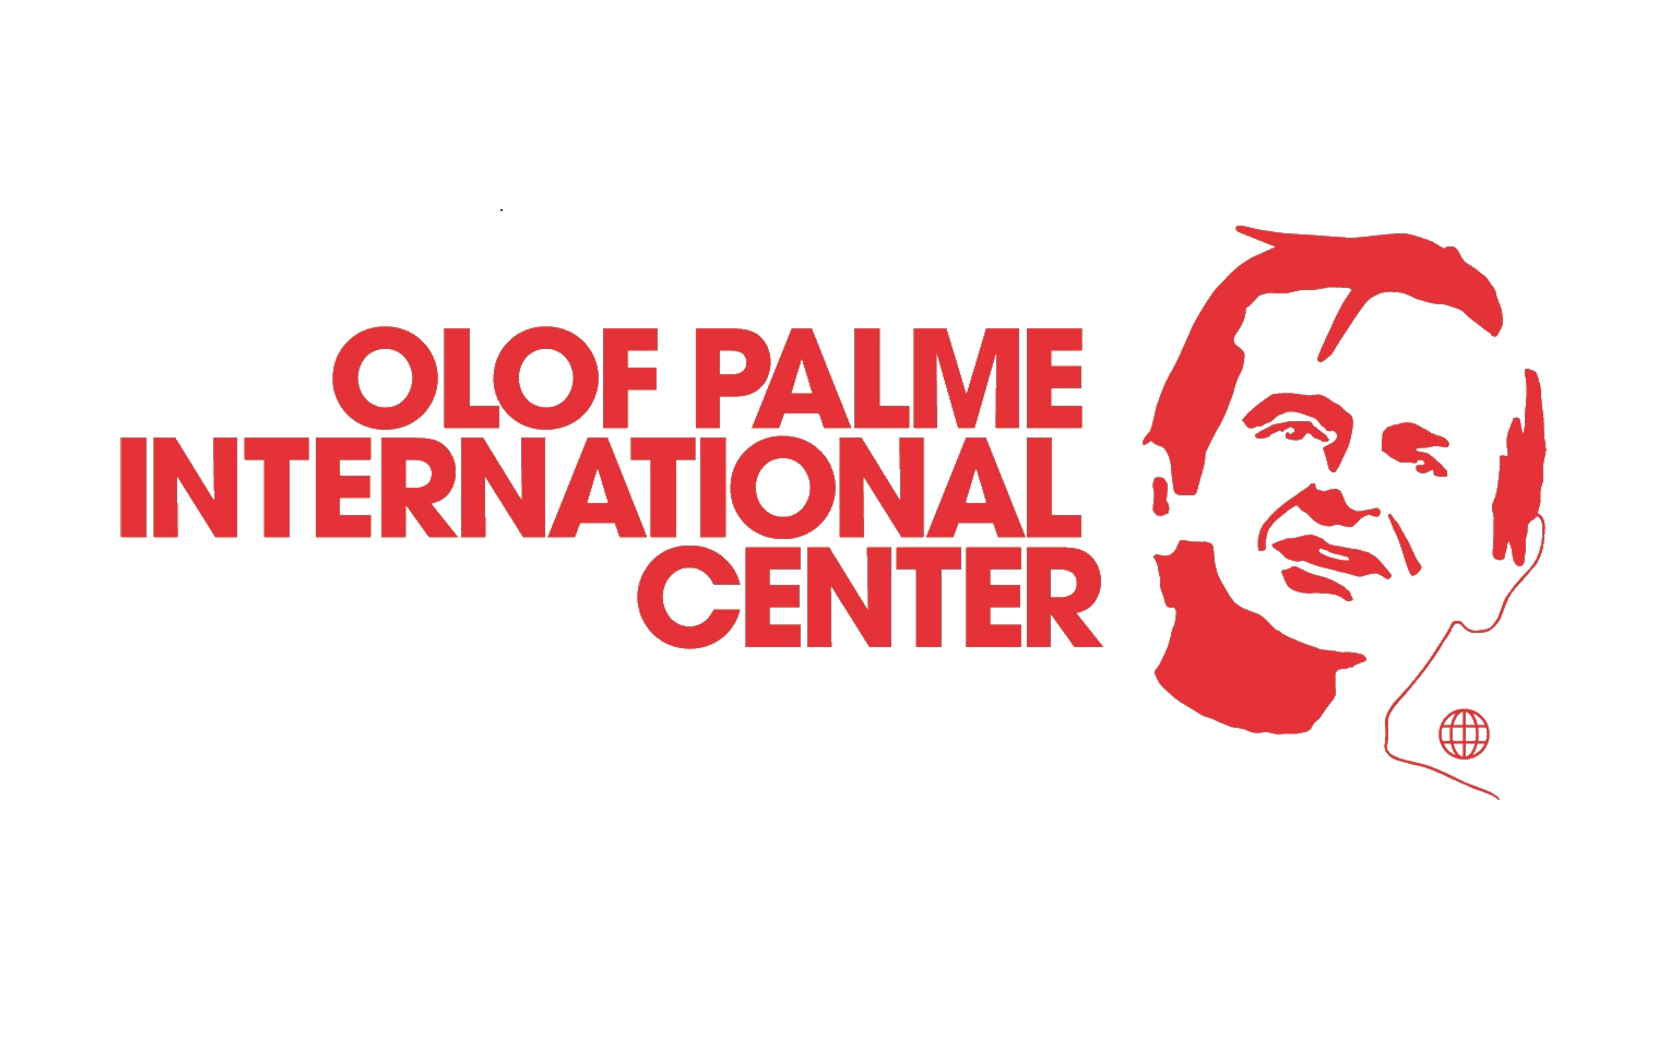 Olof Palme International Centers logotyp